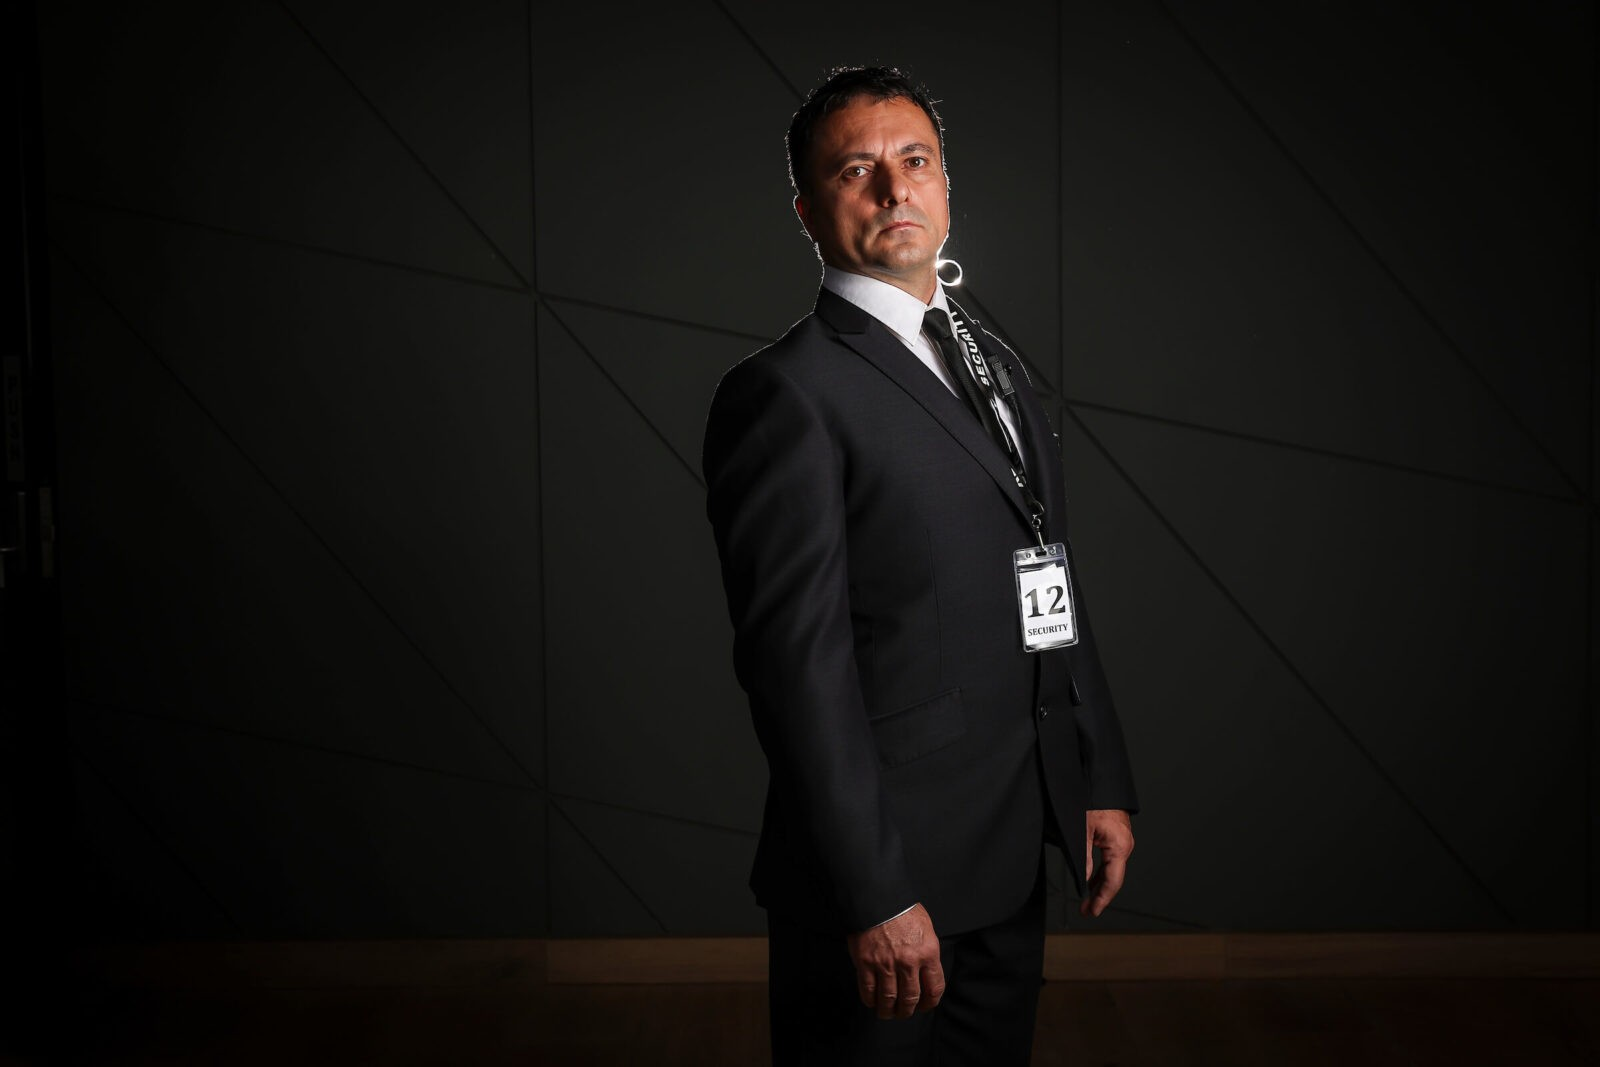 Office Security Officers Hire